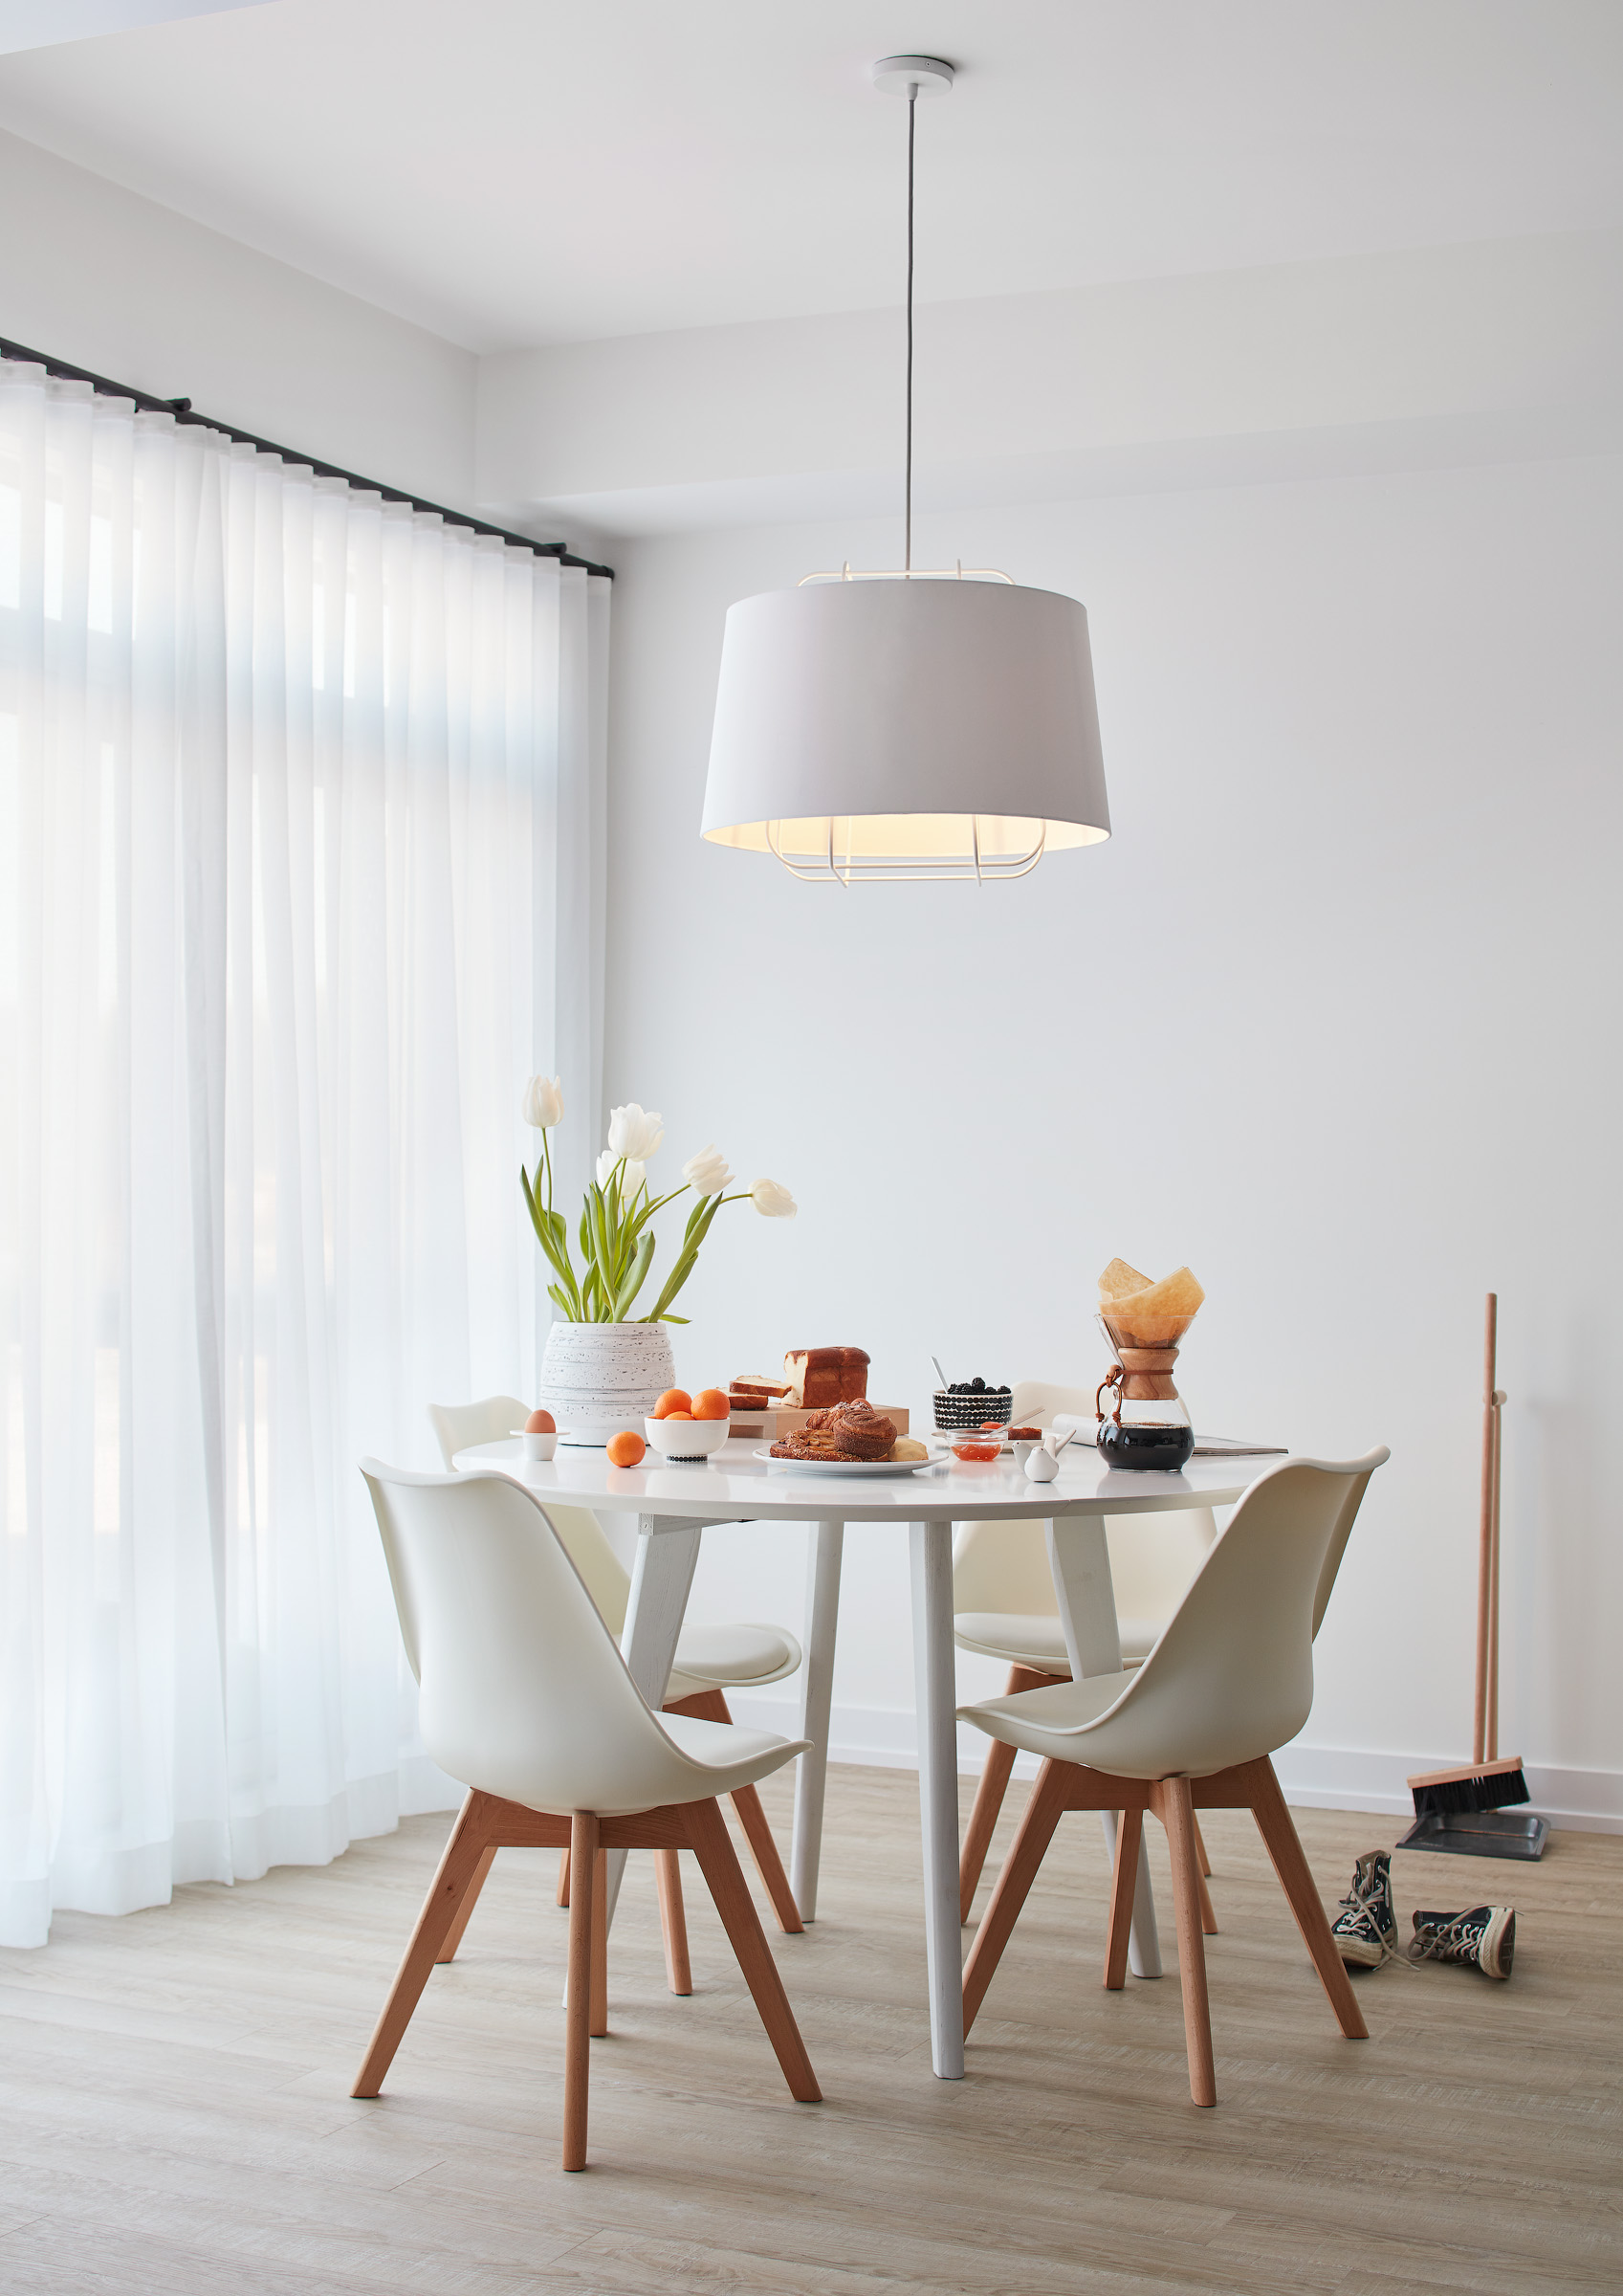 Modern Scandi breakfast area with white walls, white furniture, and table set with breakfast foods